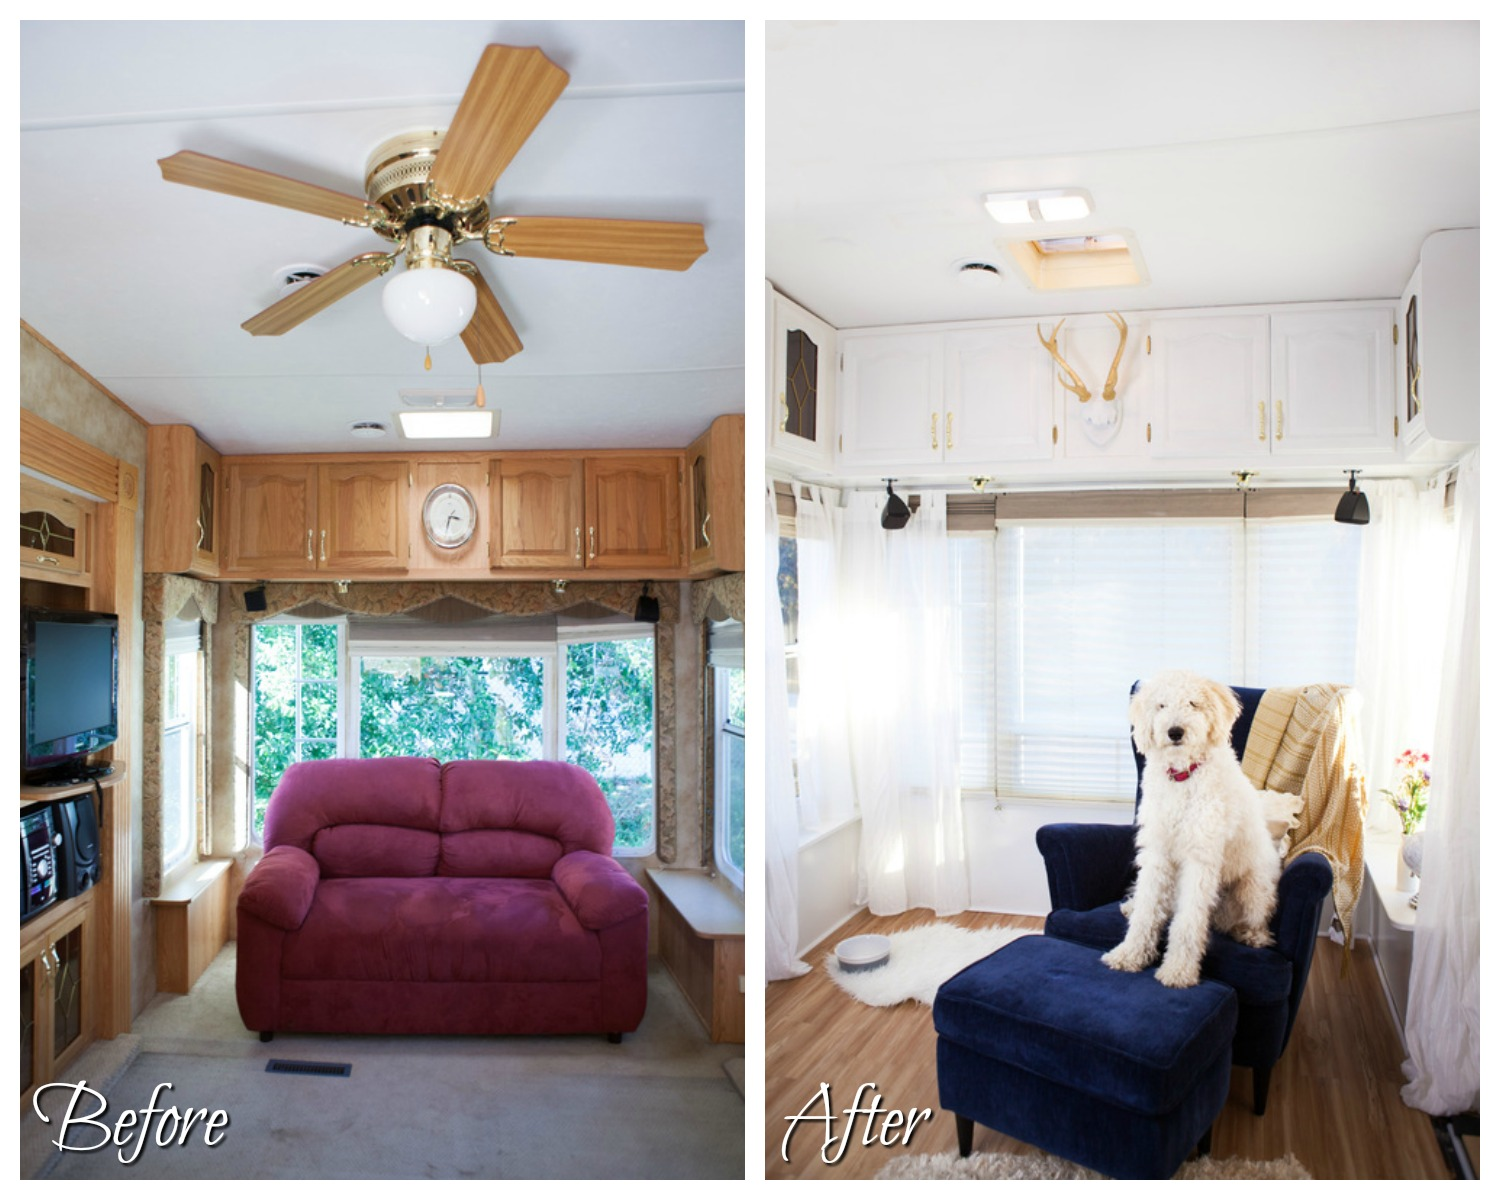 RVObsession - Fifth Wheel Renovations - Chelsea and Ryan have built a delightful home from this fifth wheel camper with somewhat tired decor.